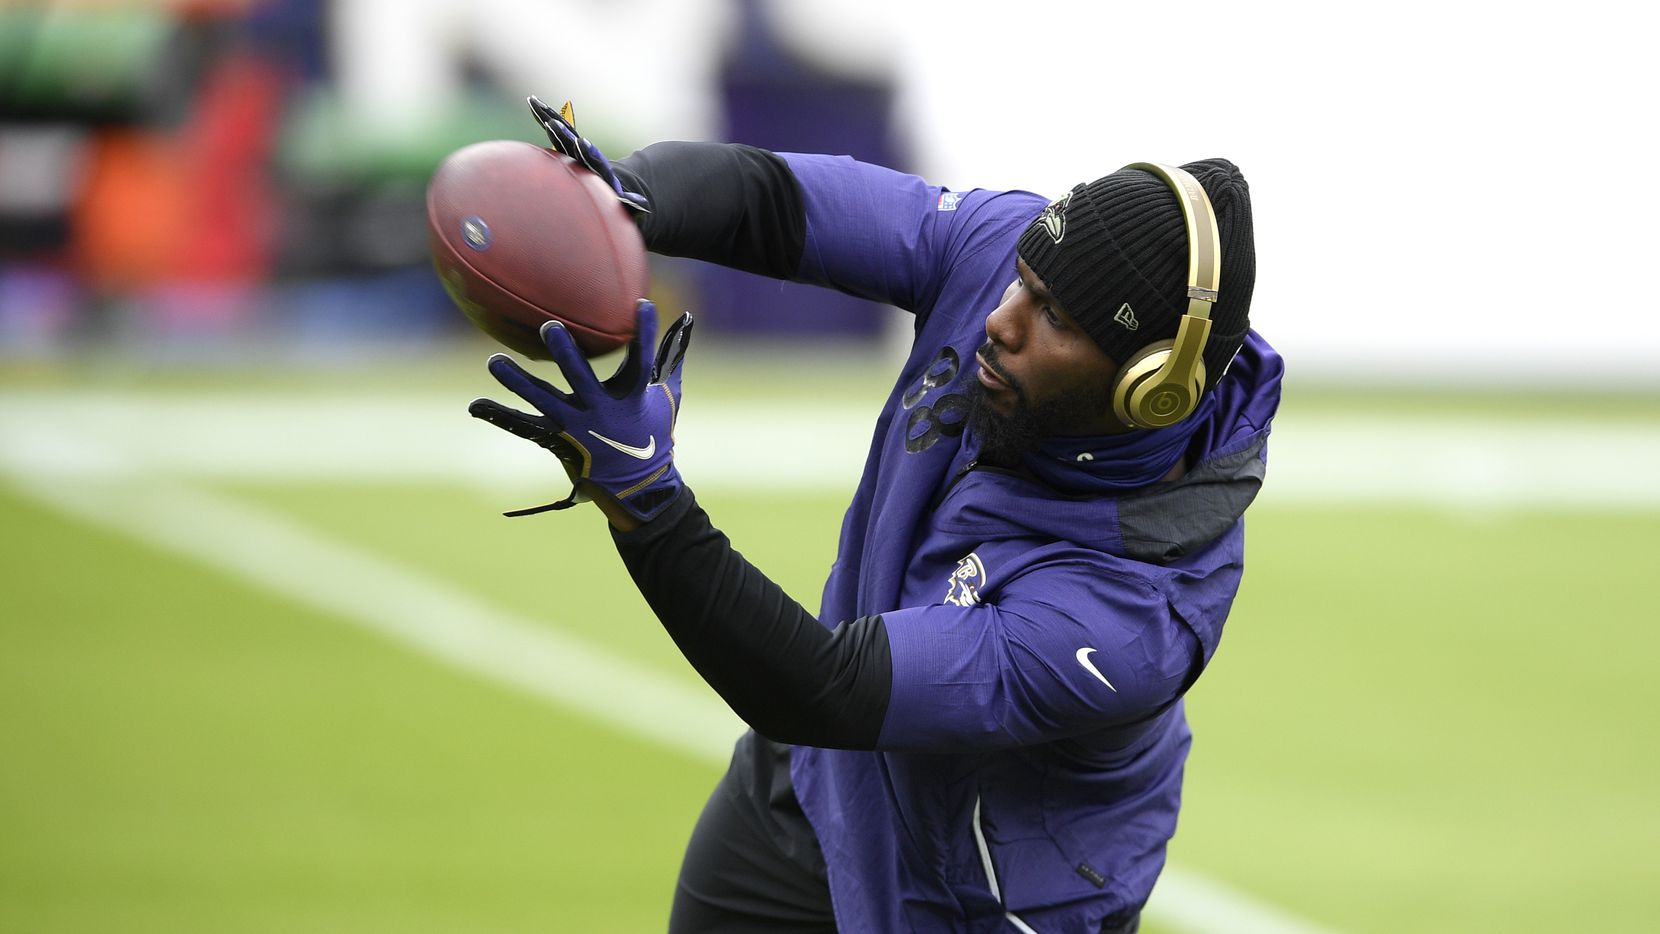 Baltimore Ravens wide receiver Dez Bryant works out prior to an NFL football game against the Tennessee Titans, Sunday, Nov. 22, 2020, in Baltimore.